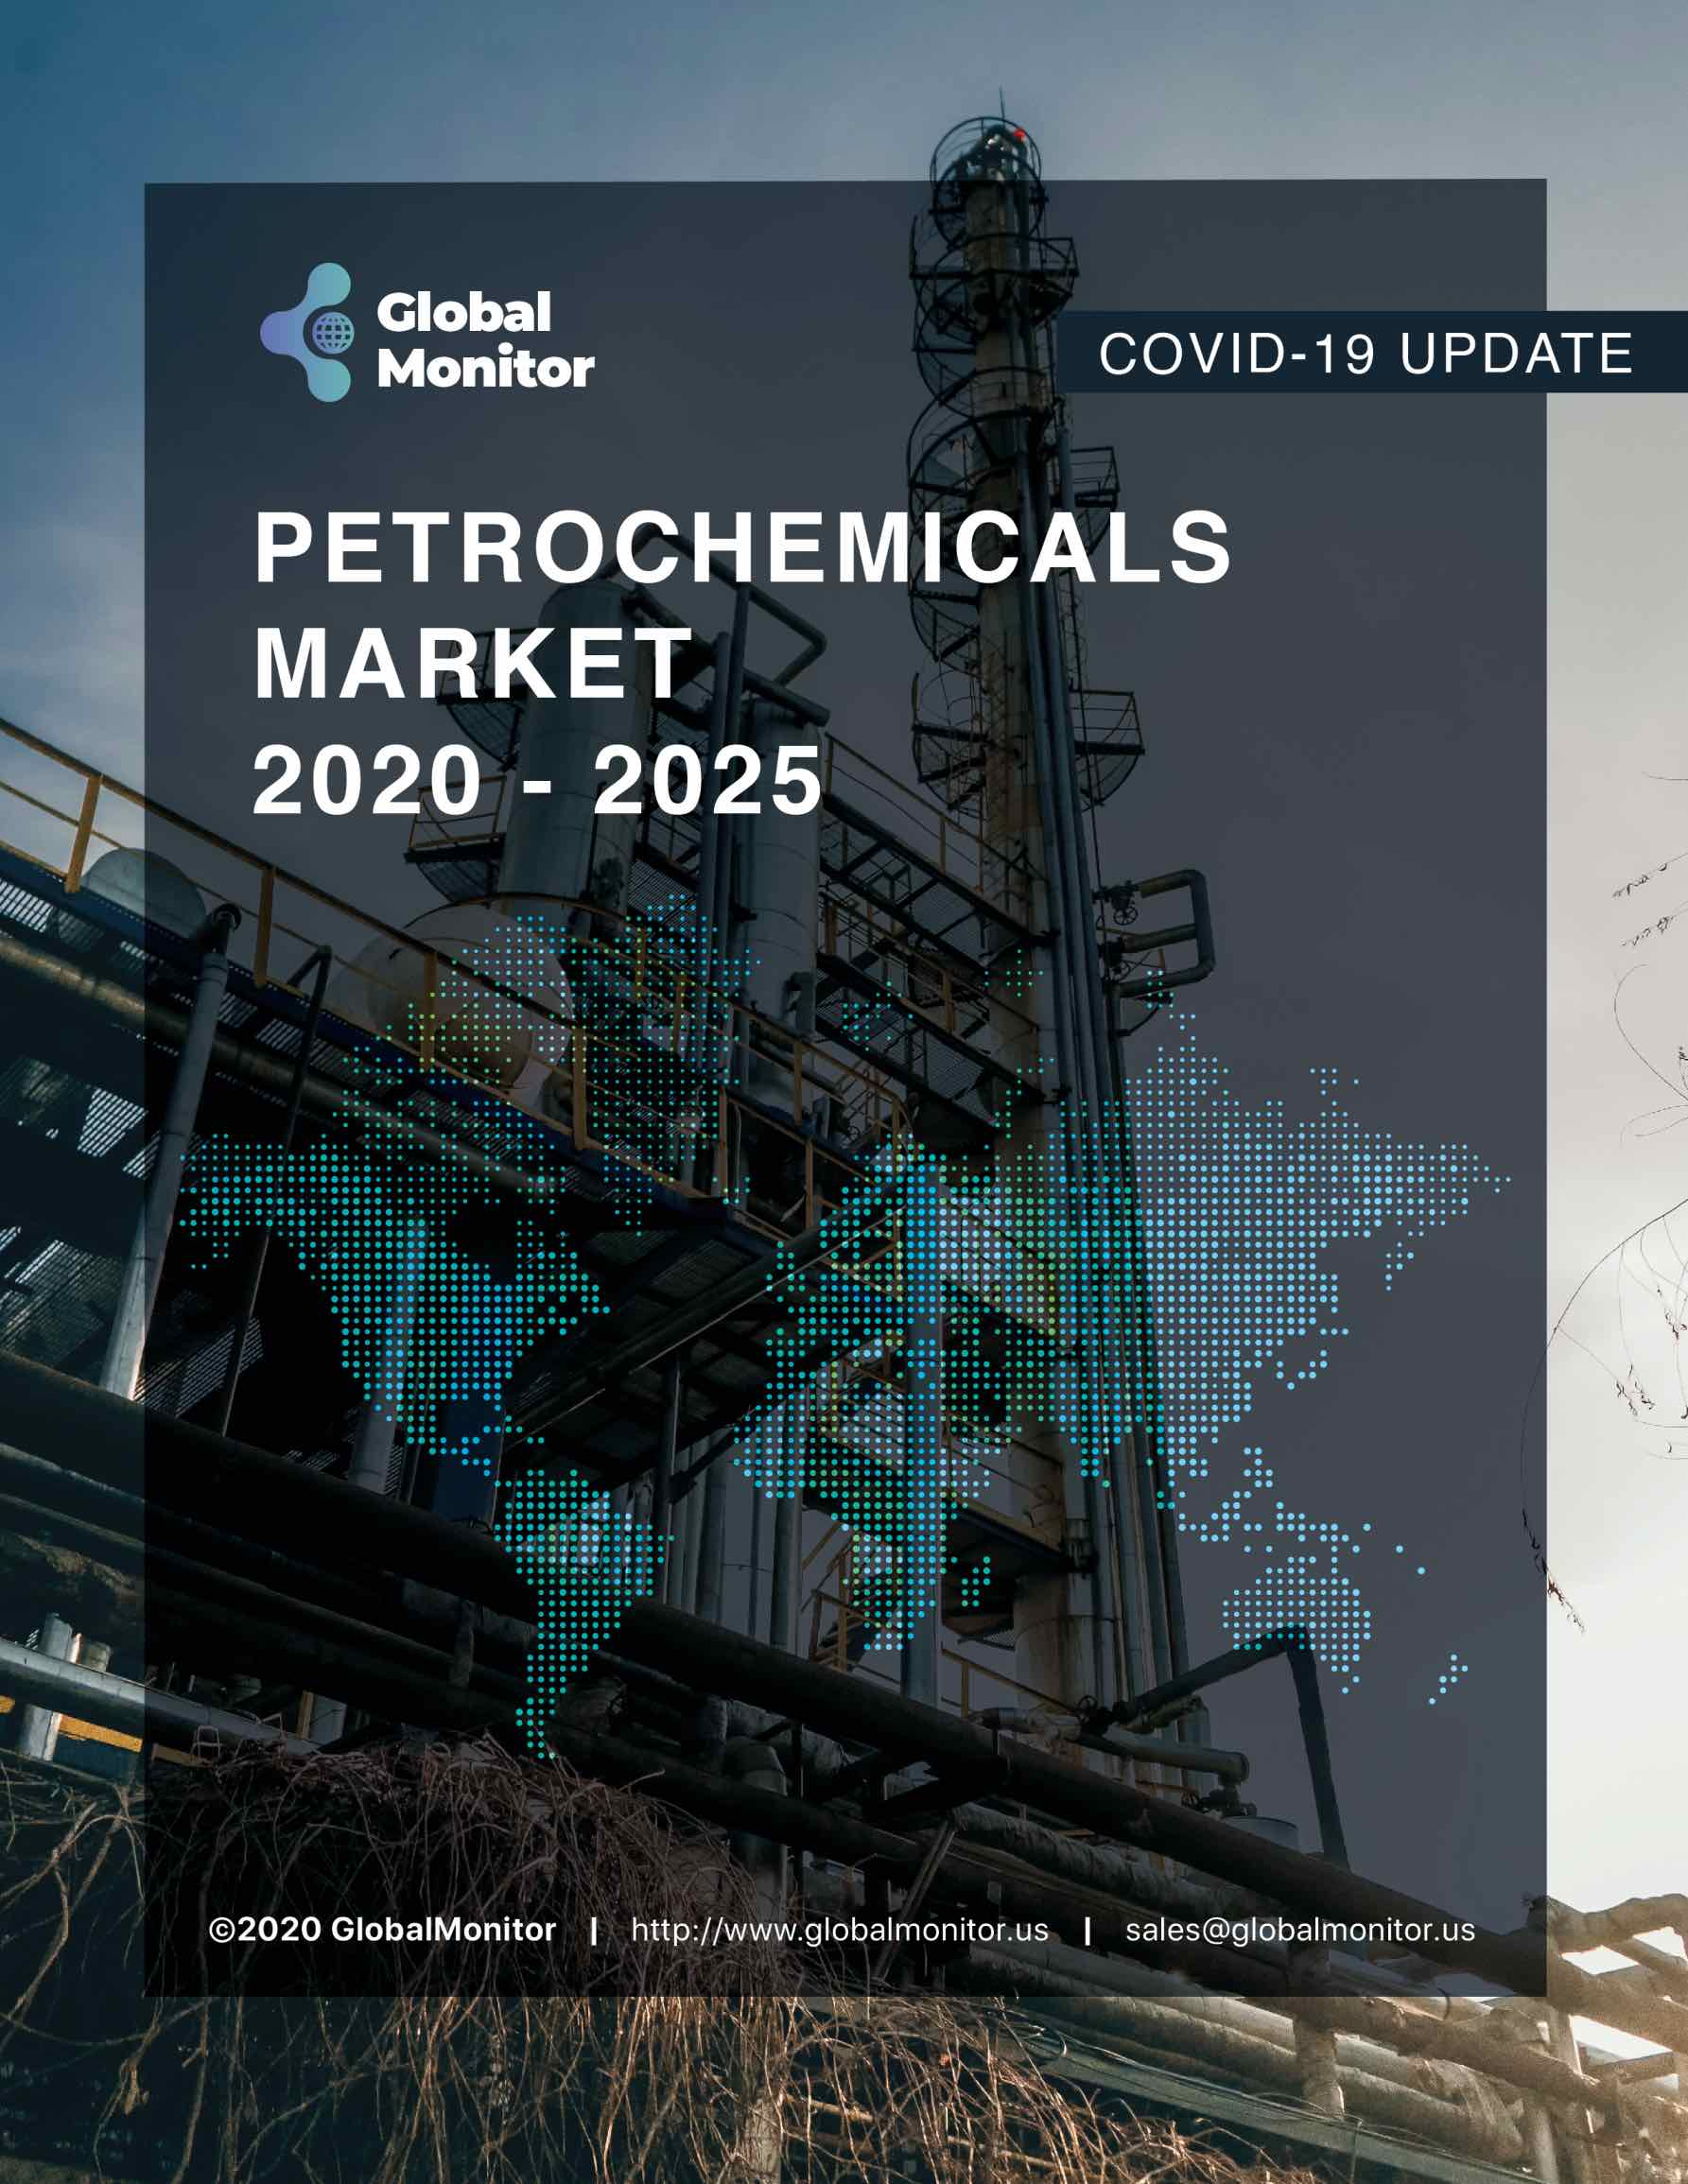 Azerbaijan Petrochemicals Market Report With COVID-19 Analysis (2020-2025)